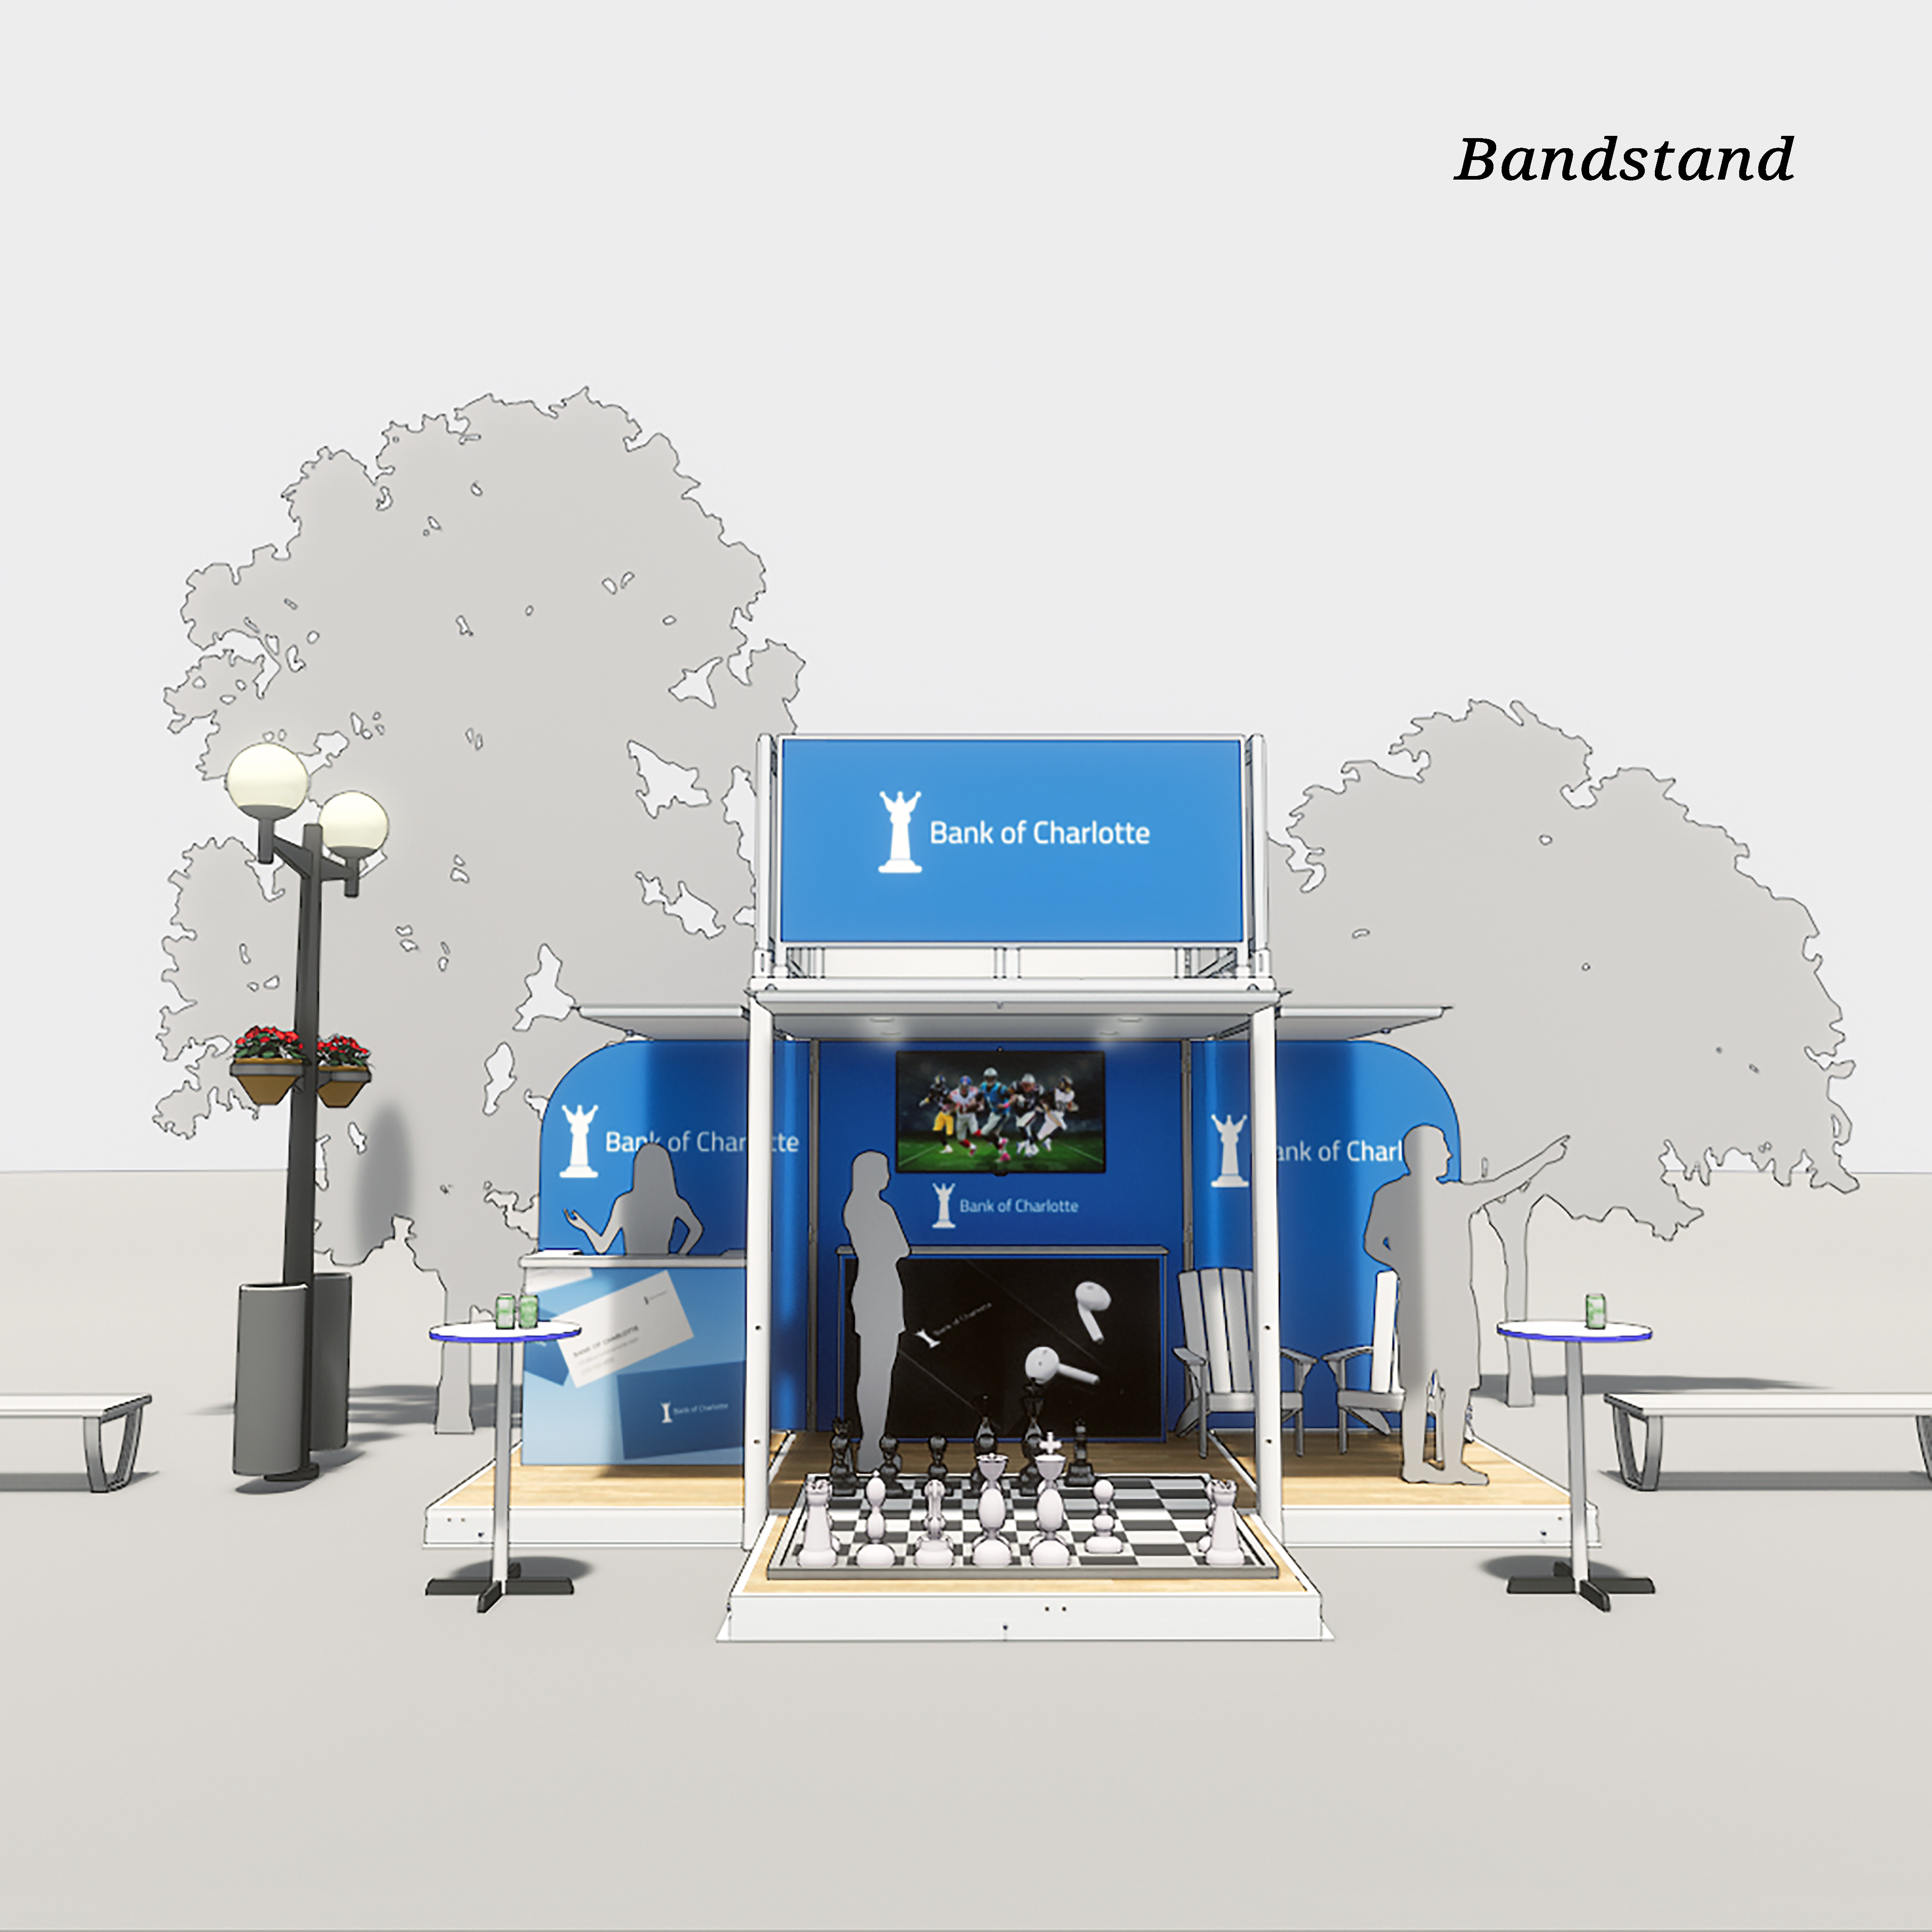 New-Bandstand-r0.png